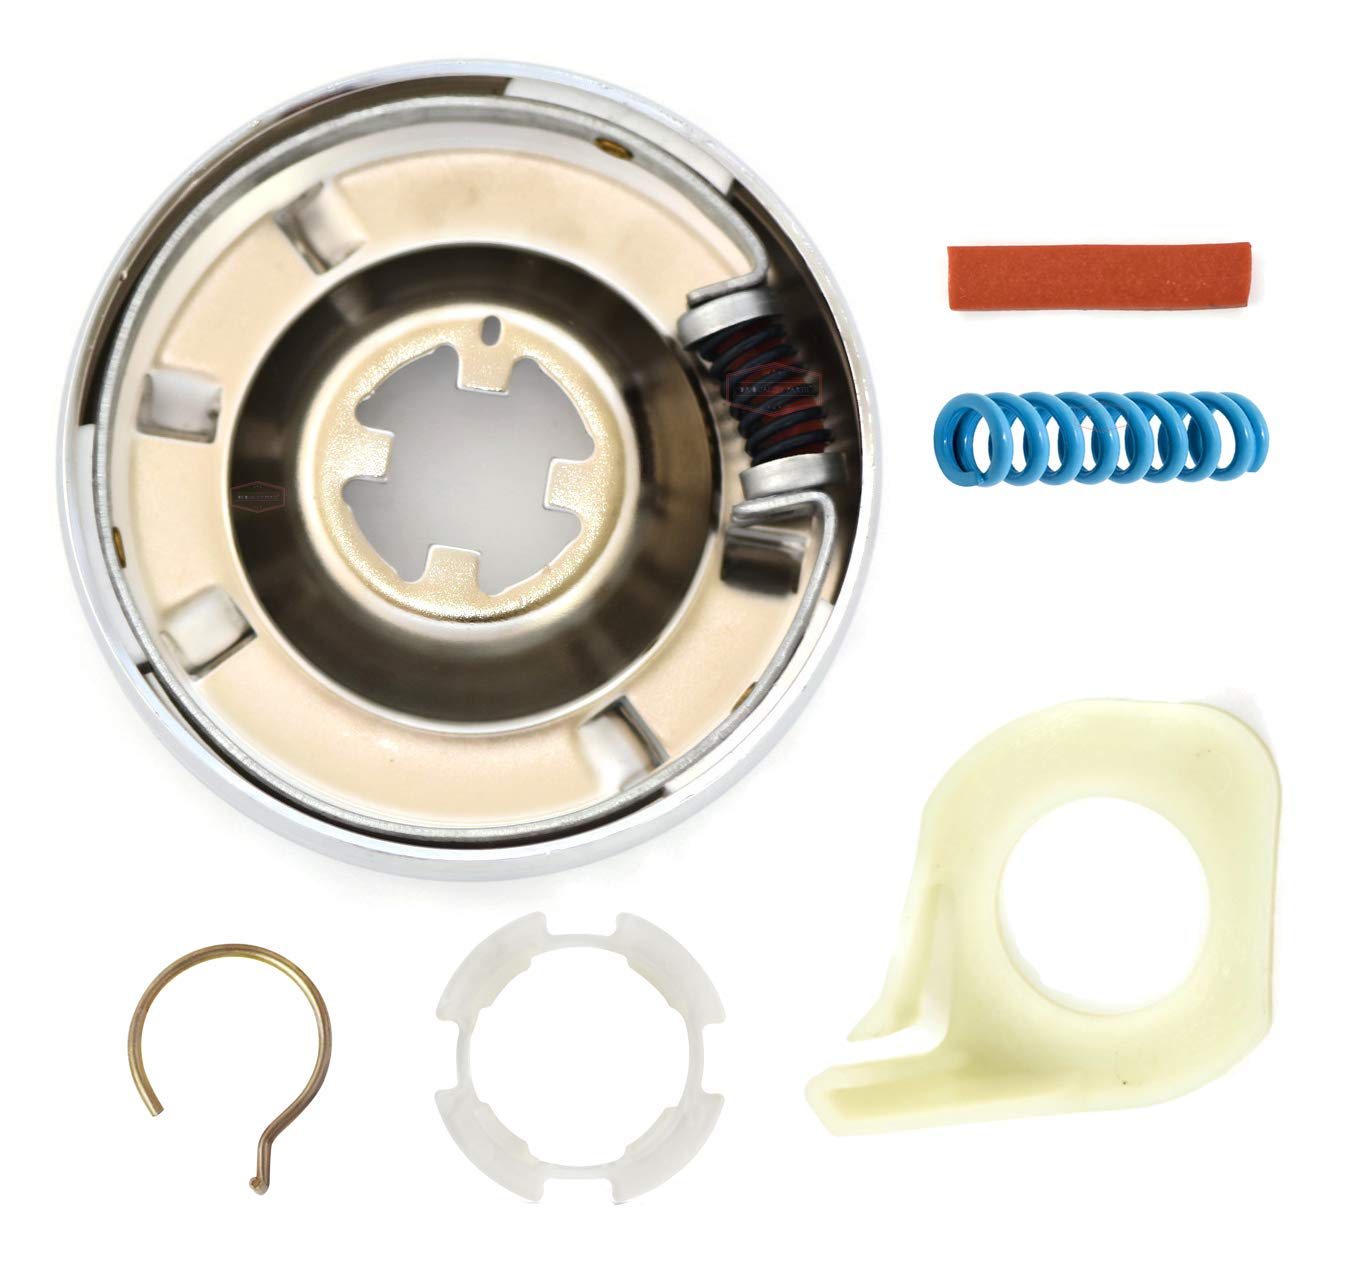 285785 Washing machine gearbox clutch Kit Fits for Whirlpool ...